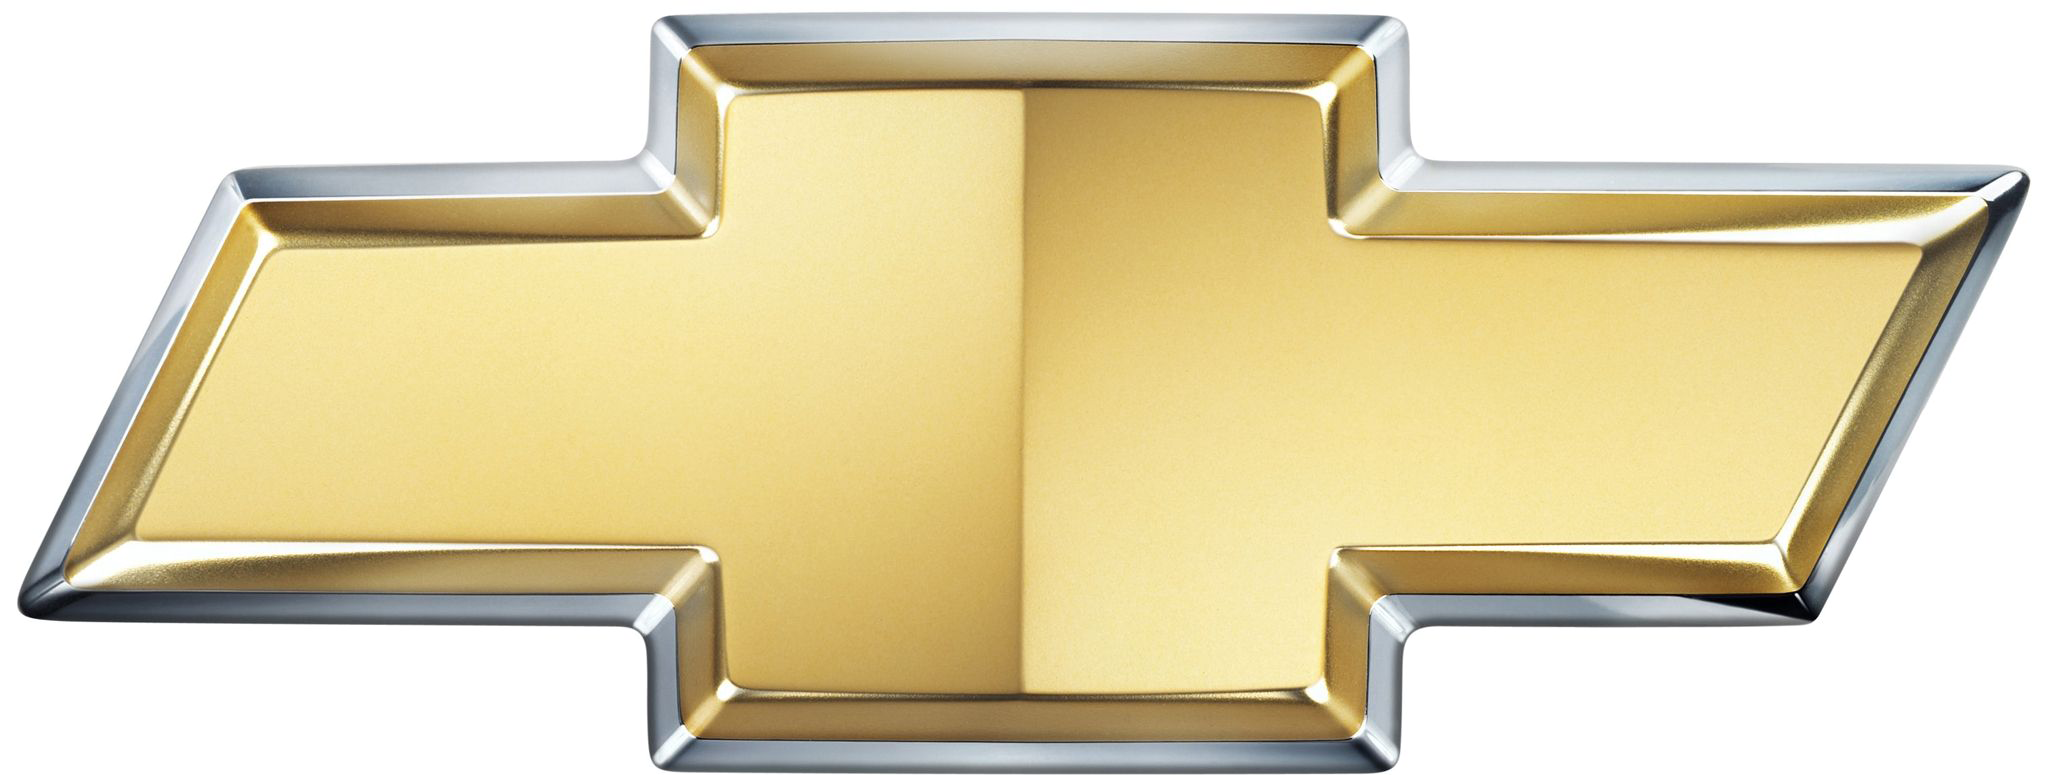 Pin On Png Images